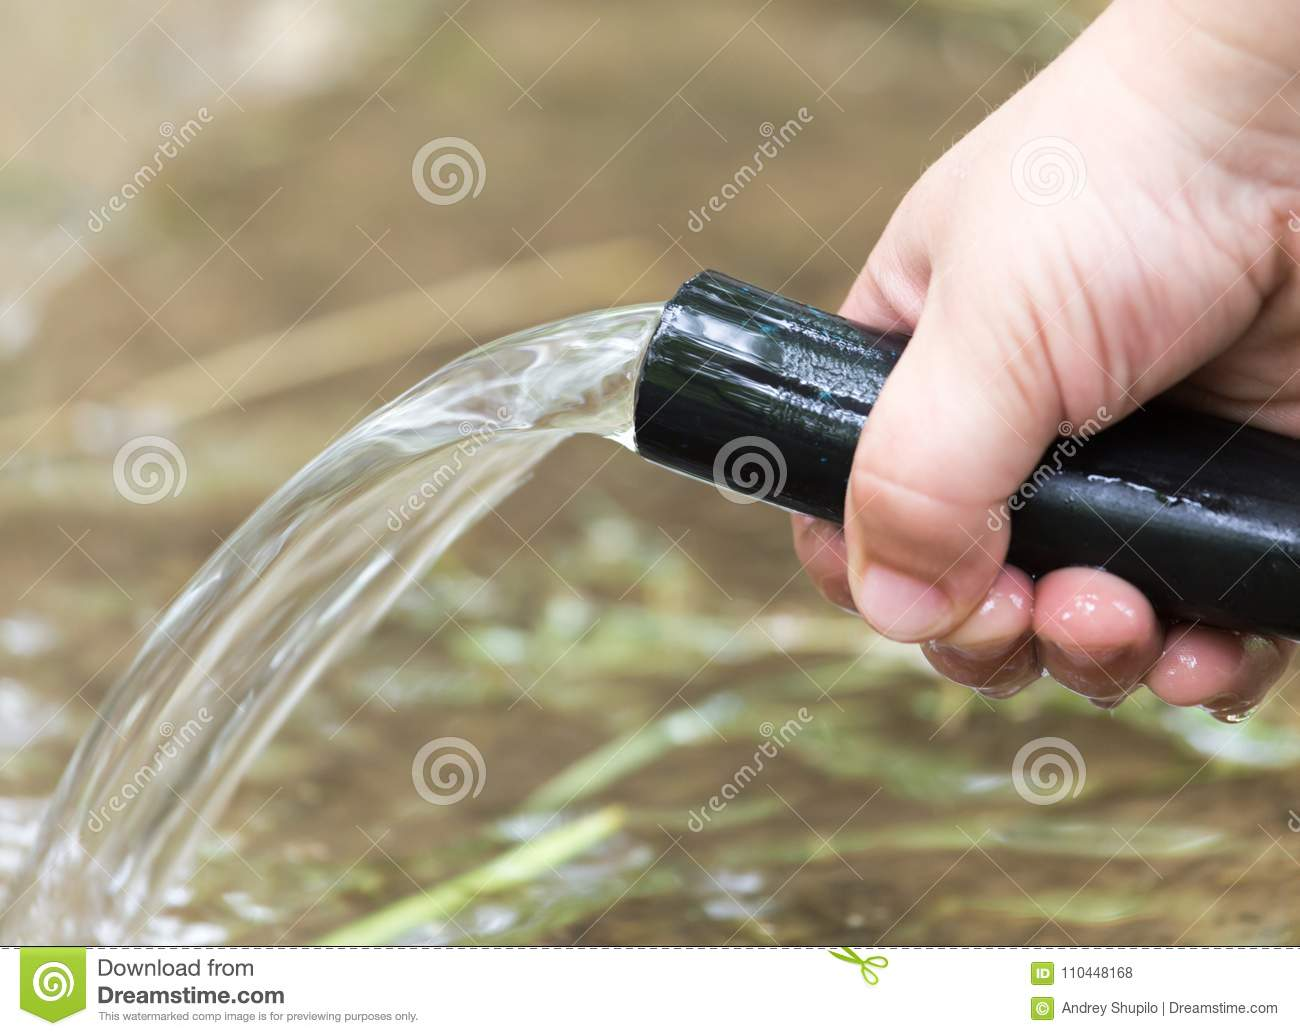 Water from a hose in hand